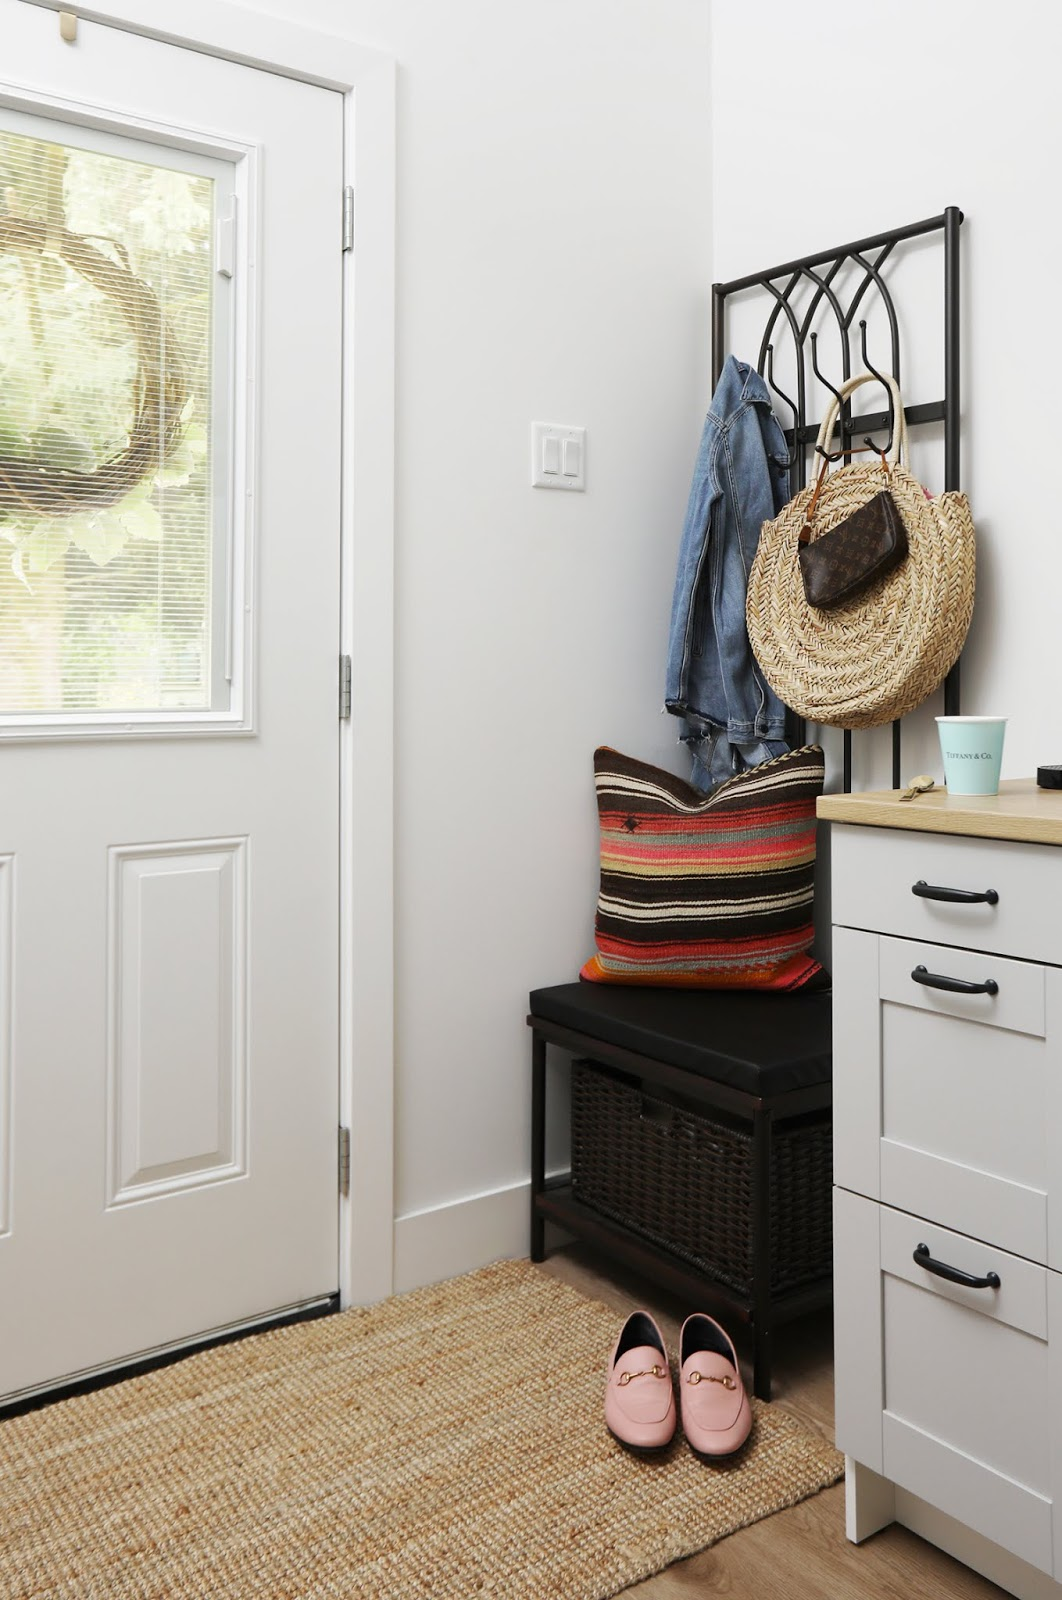 Small home coat rack + storage bench